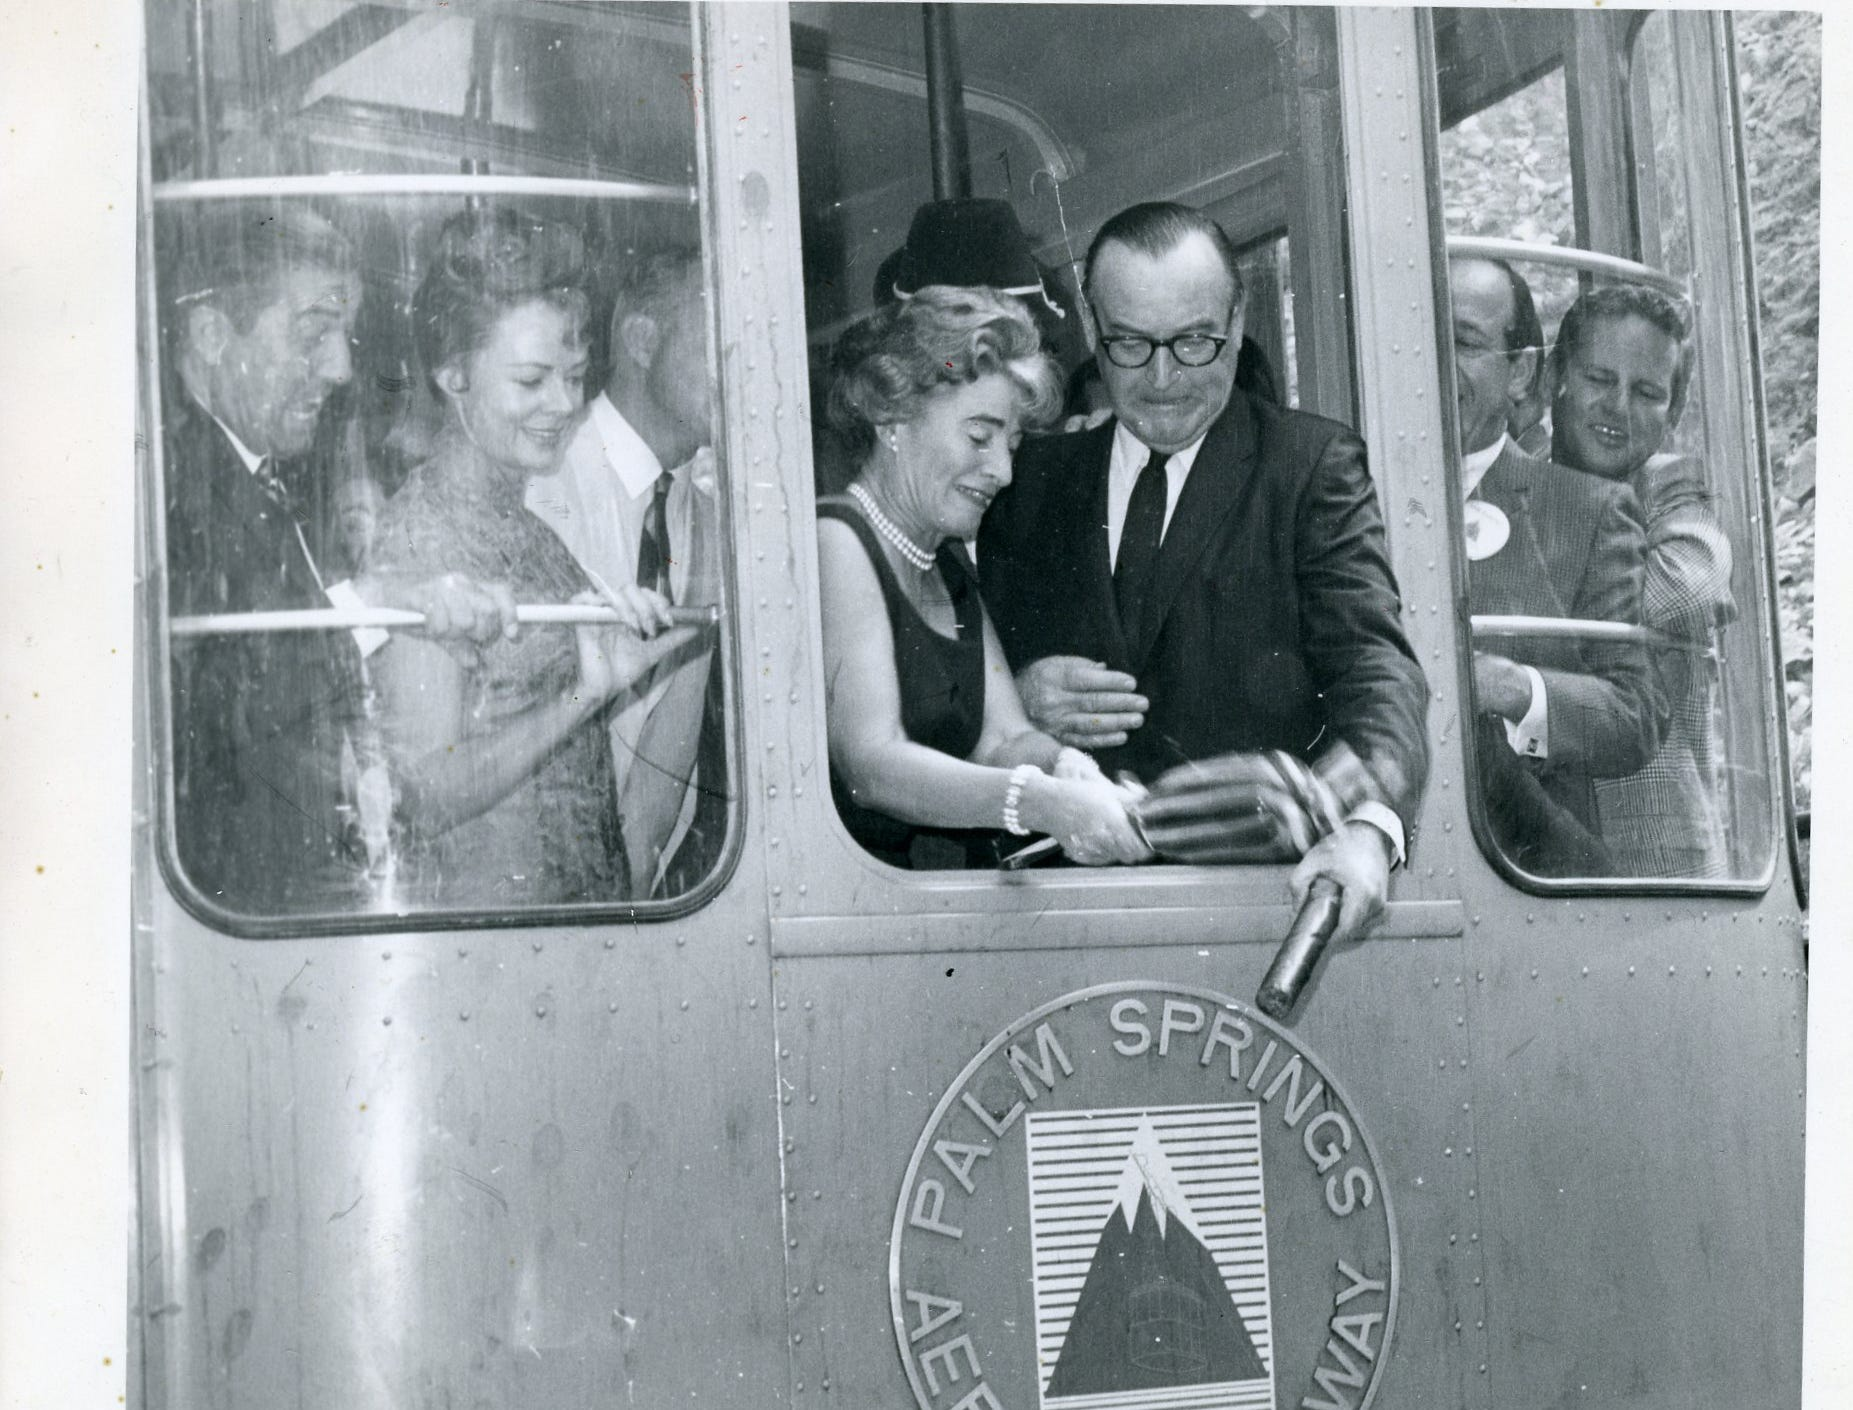 This photo shows the dedication of the Palm Springs Aerial Tram.